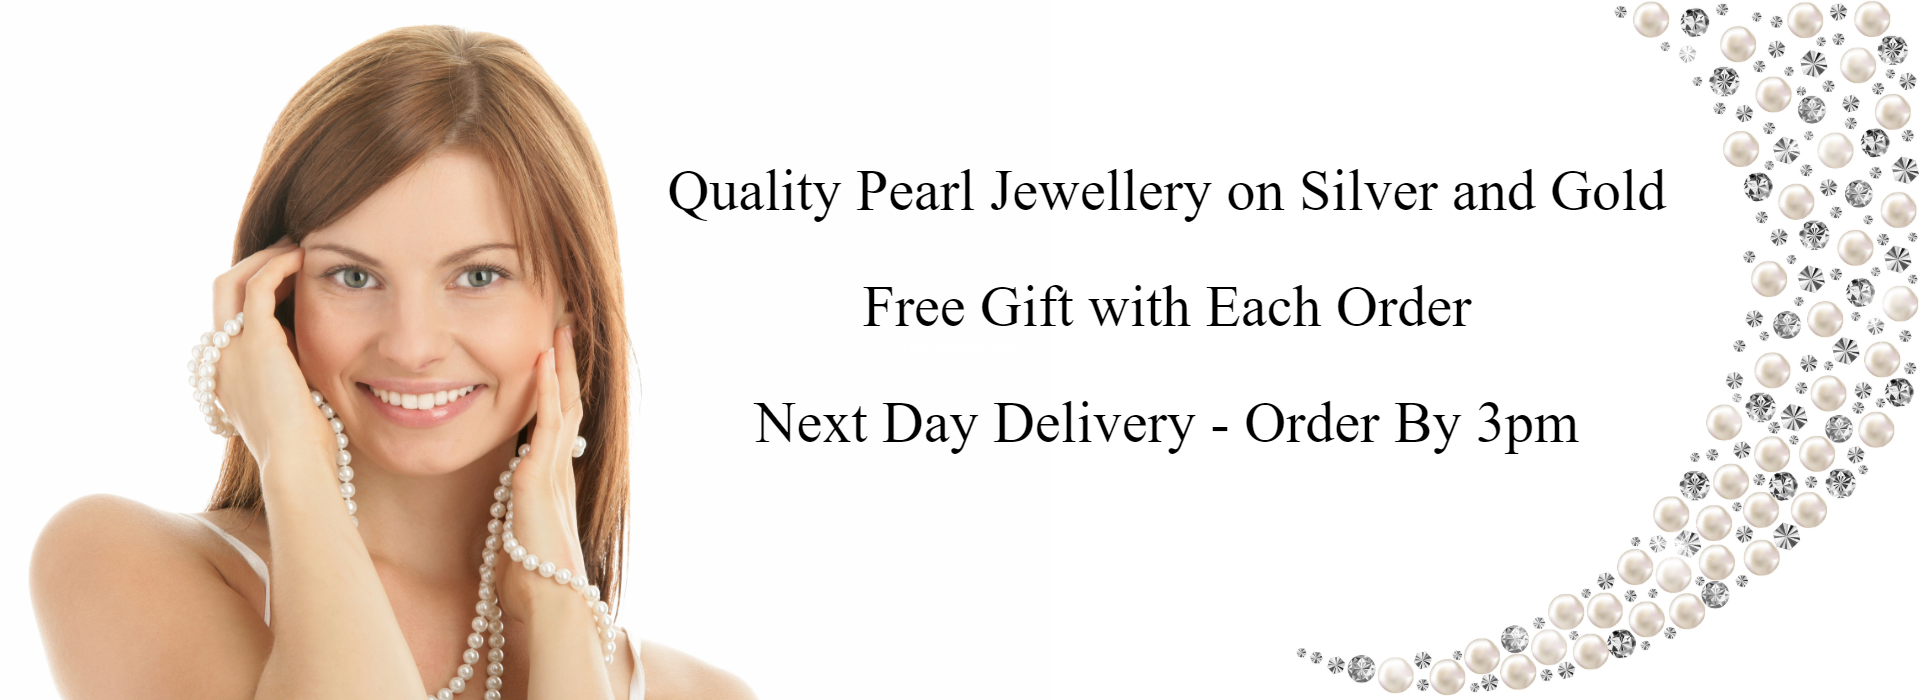 Pearl Jewellery Online - Girl with Pearl Necklace